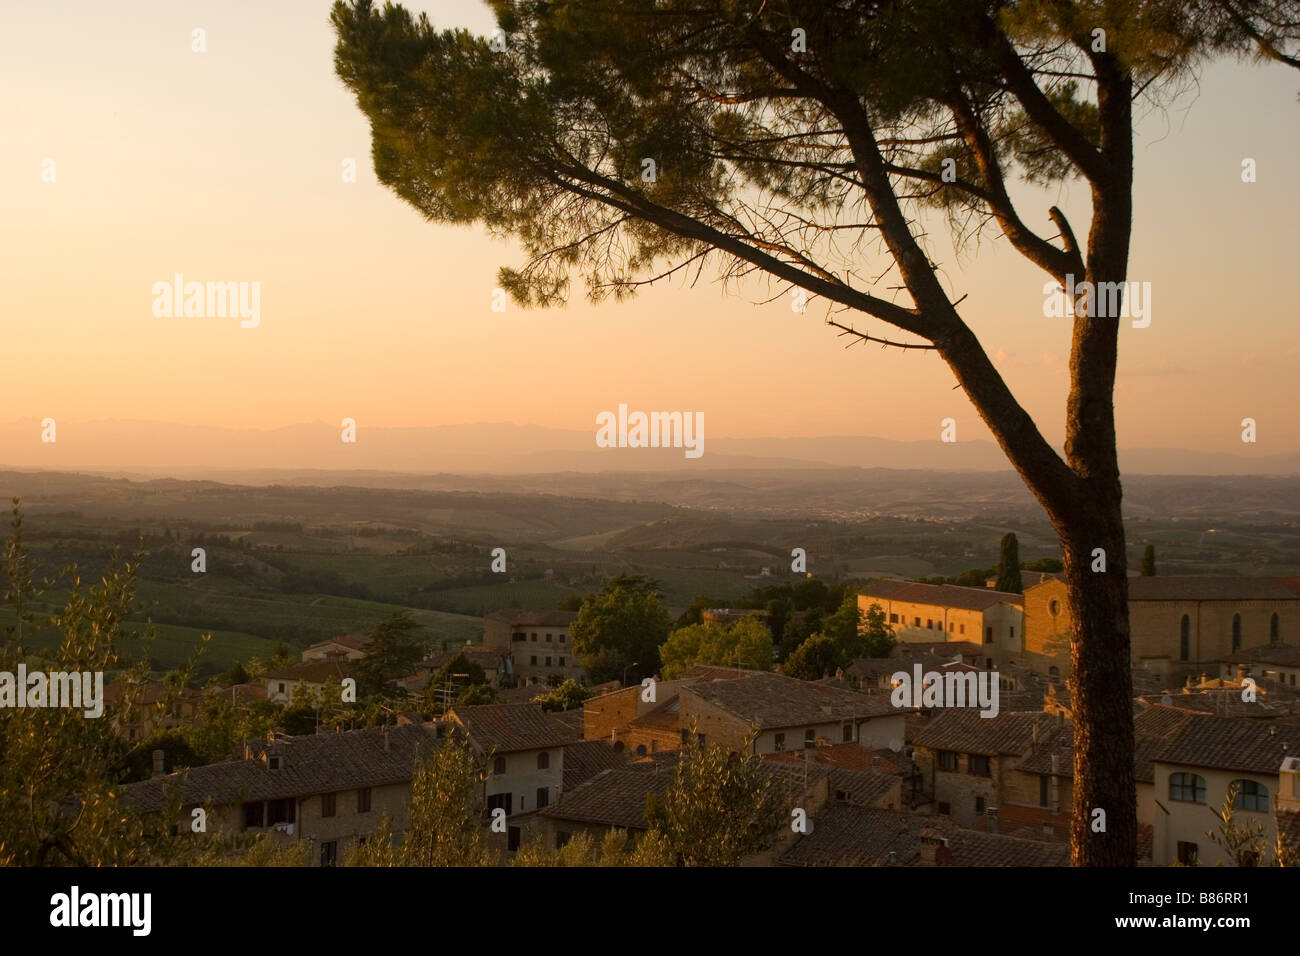 A view of the sun-drenched hills and sky of Tuscany, Italy, from the medieval town of San Gimignano. - Stock Image